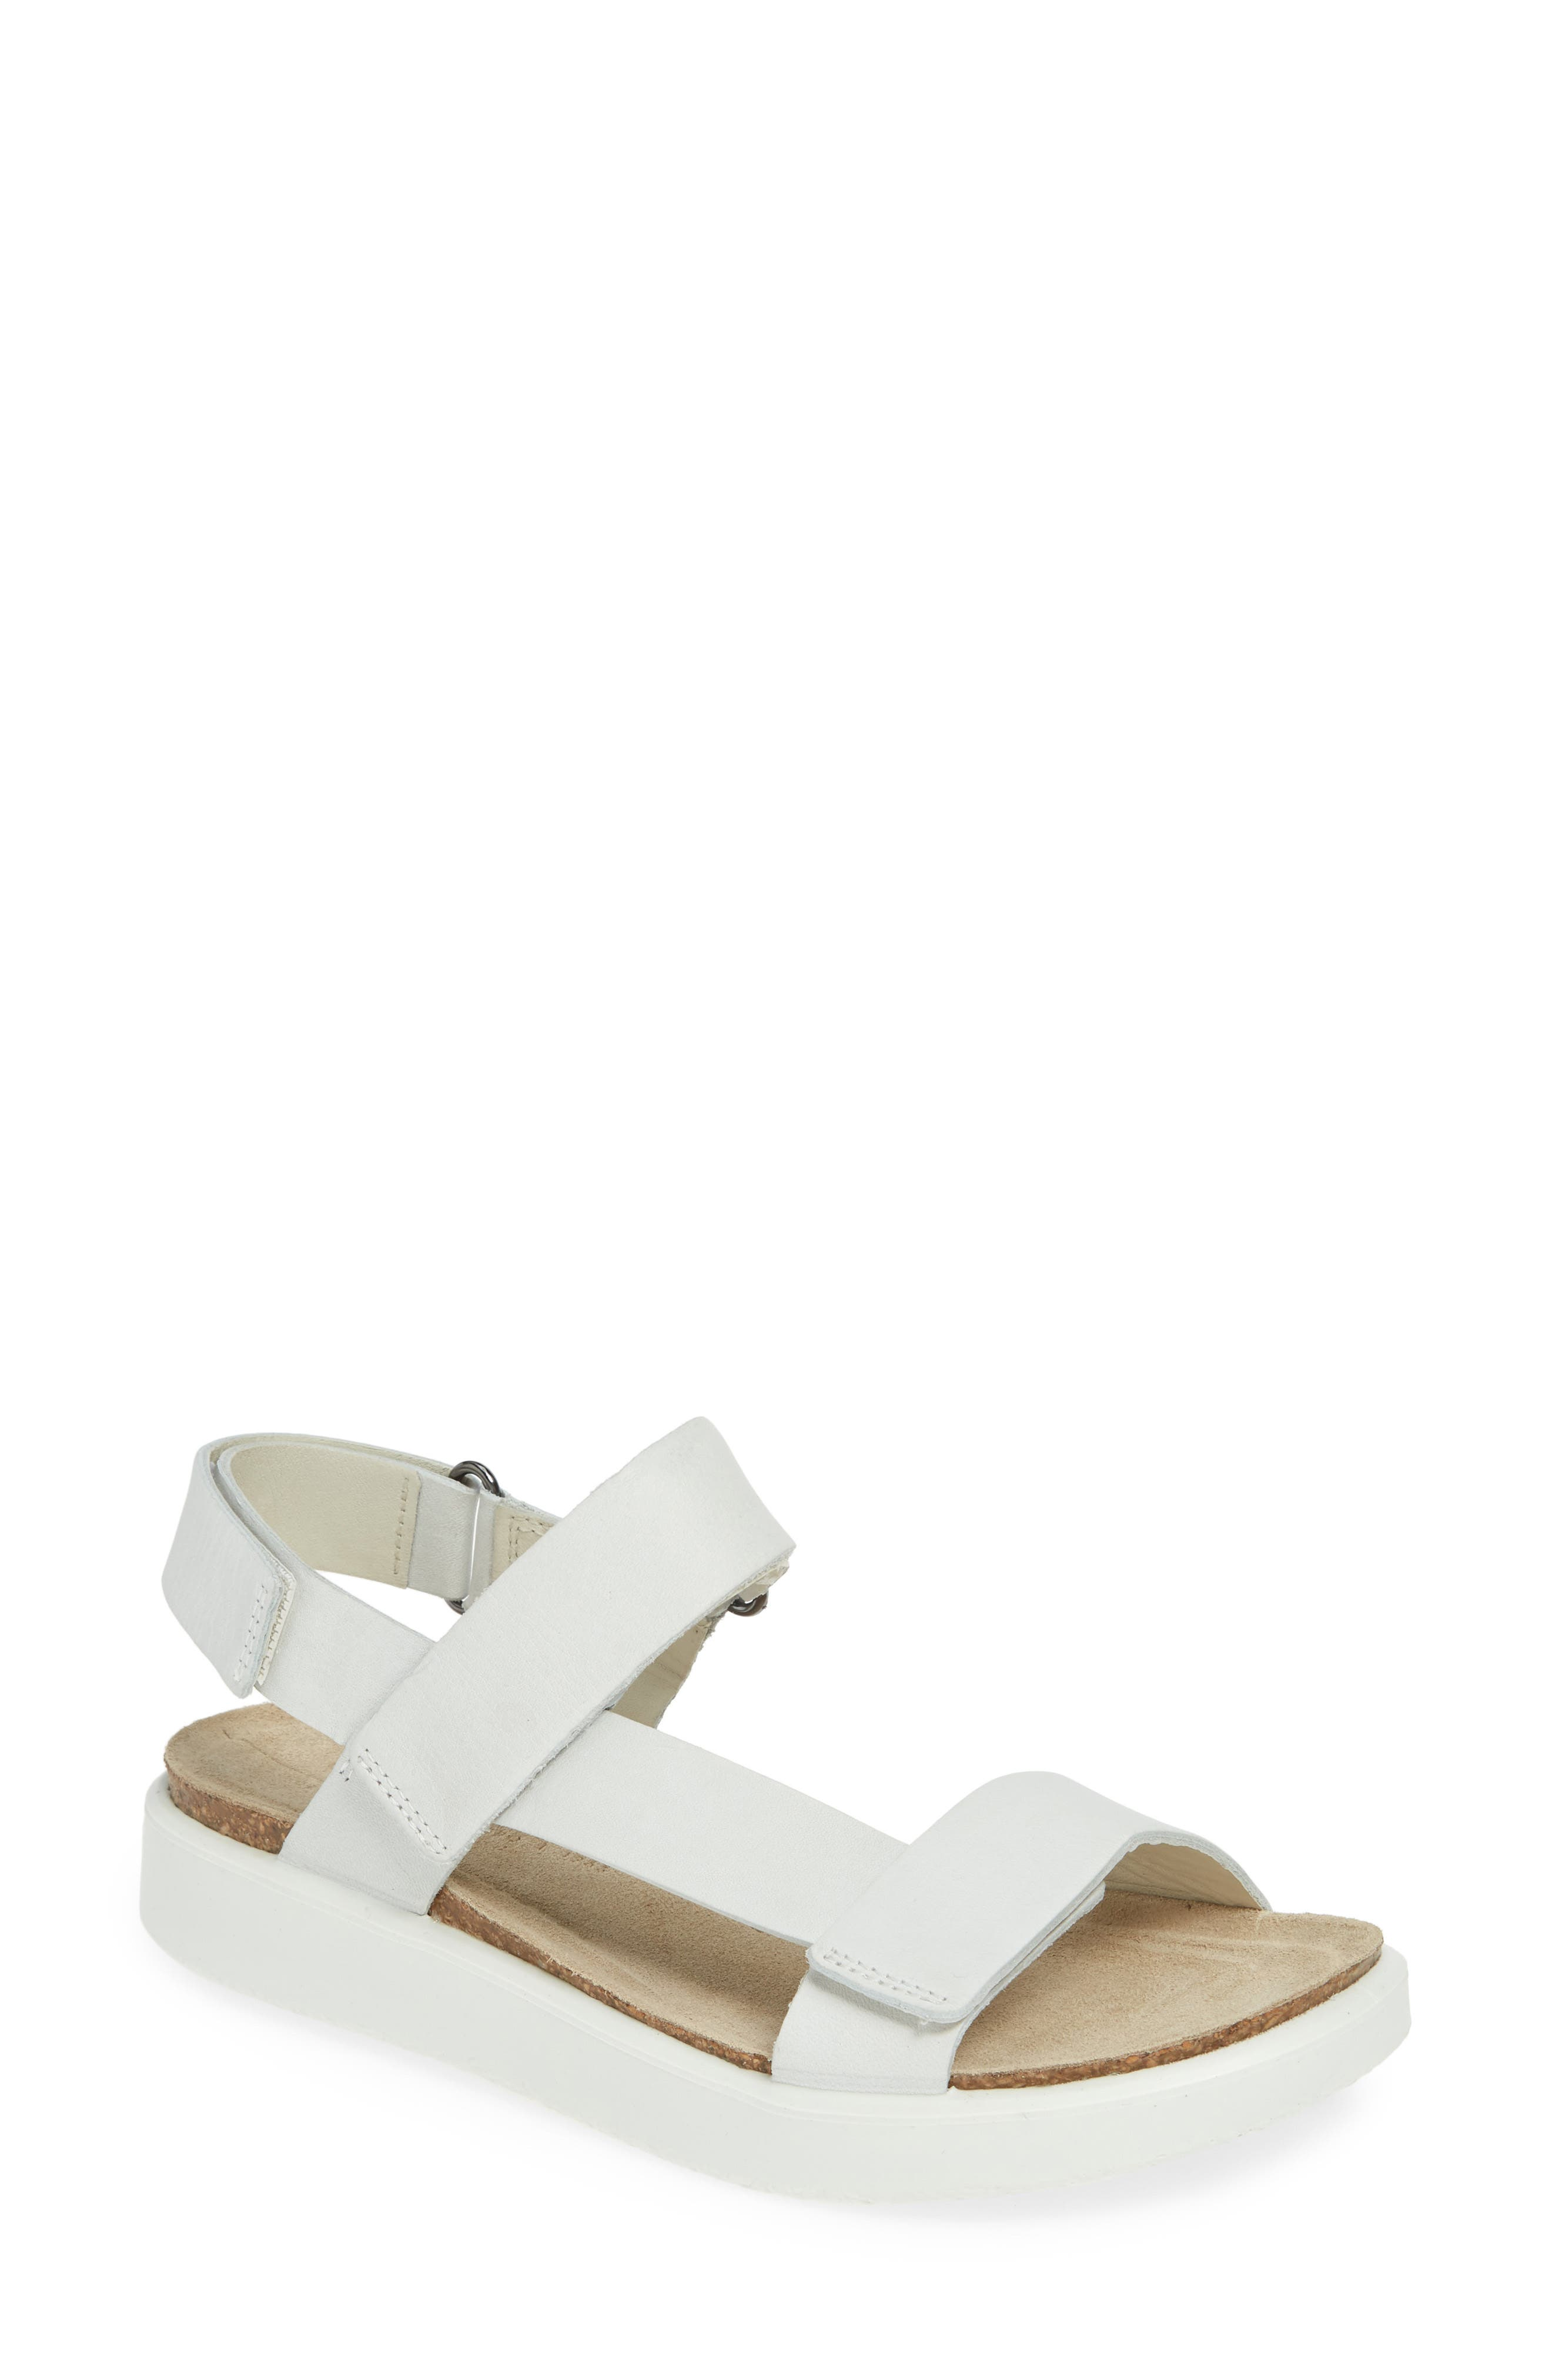 UPC 809704946511 product image for Women's Ecco Corksphere Strap Sandal, Size 7-7.5US / 38EU - White | upcitemdb.com